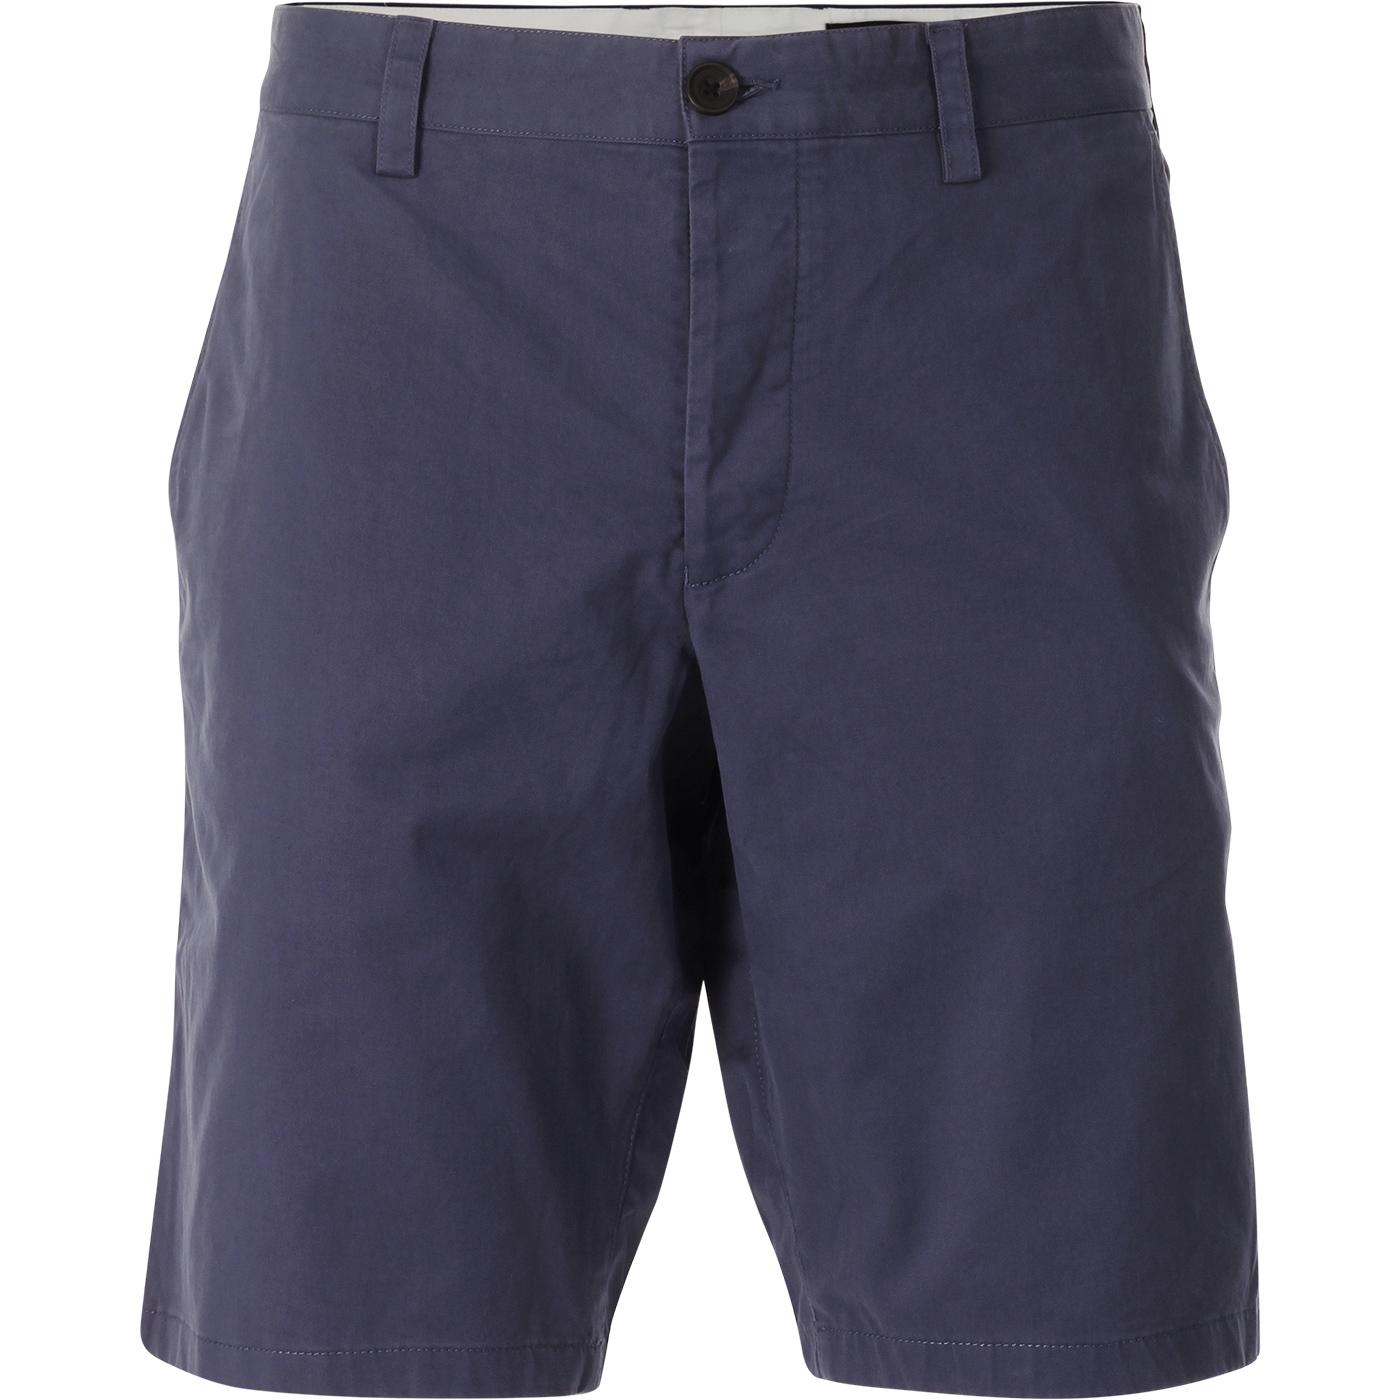 FRENCH CONNECTION Machine Stretch Shorts (Blue)